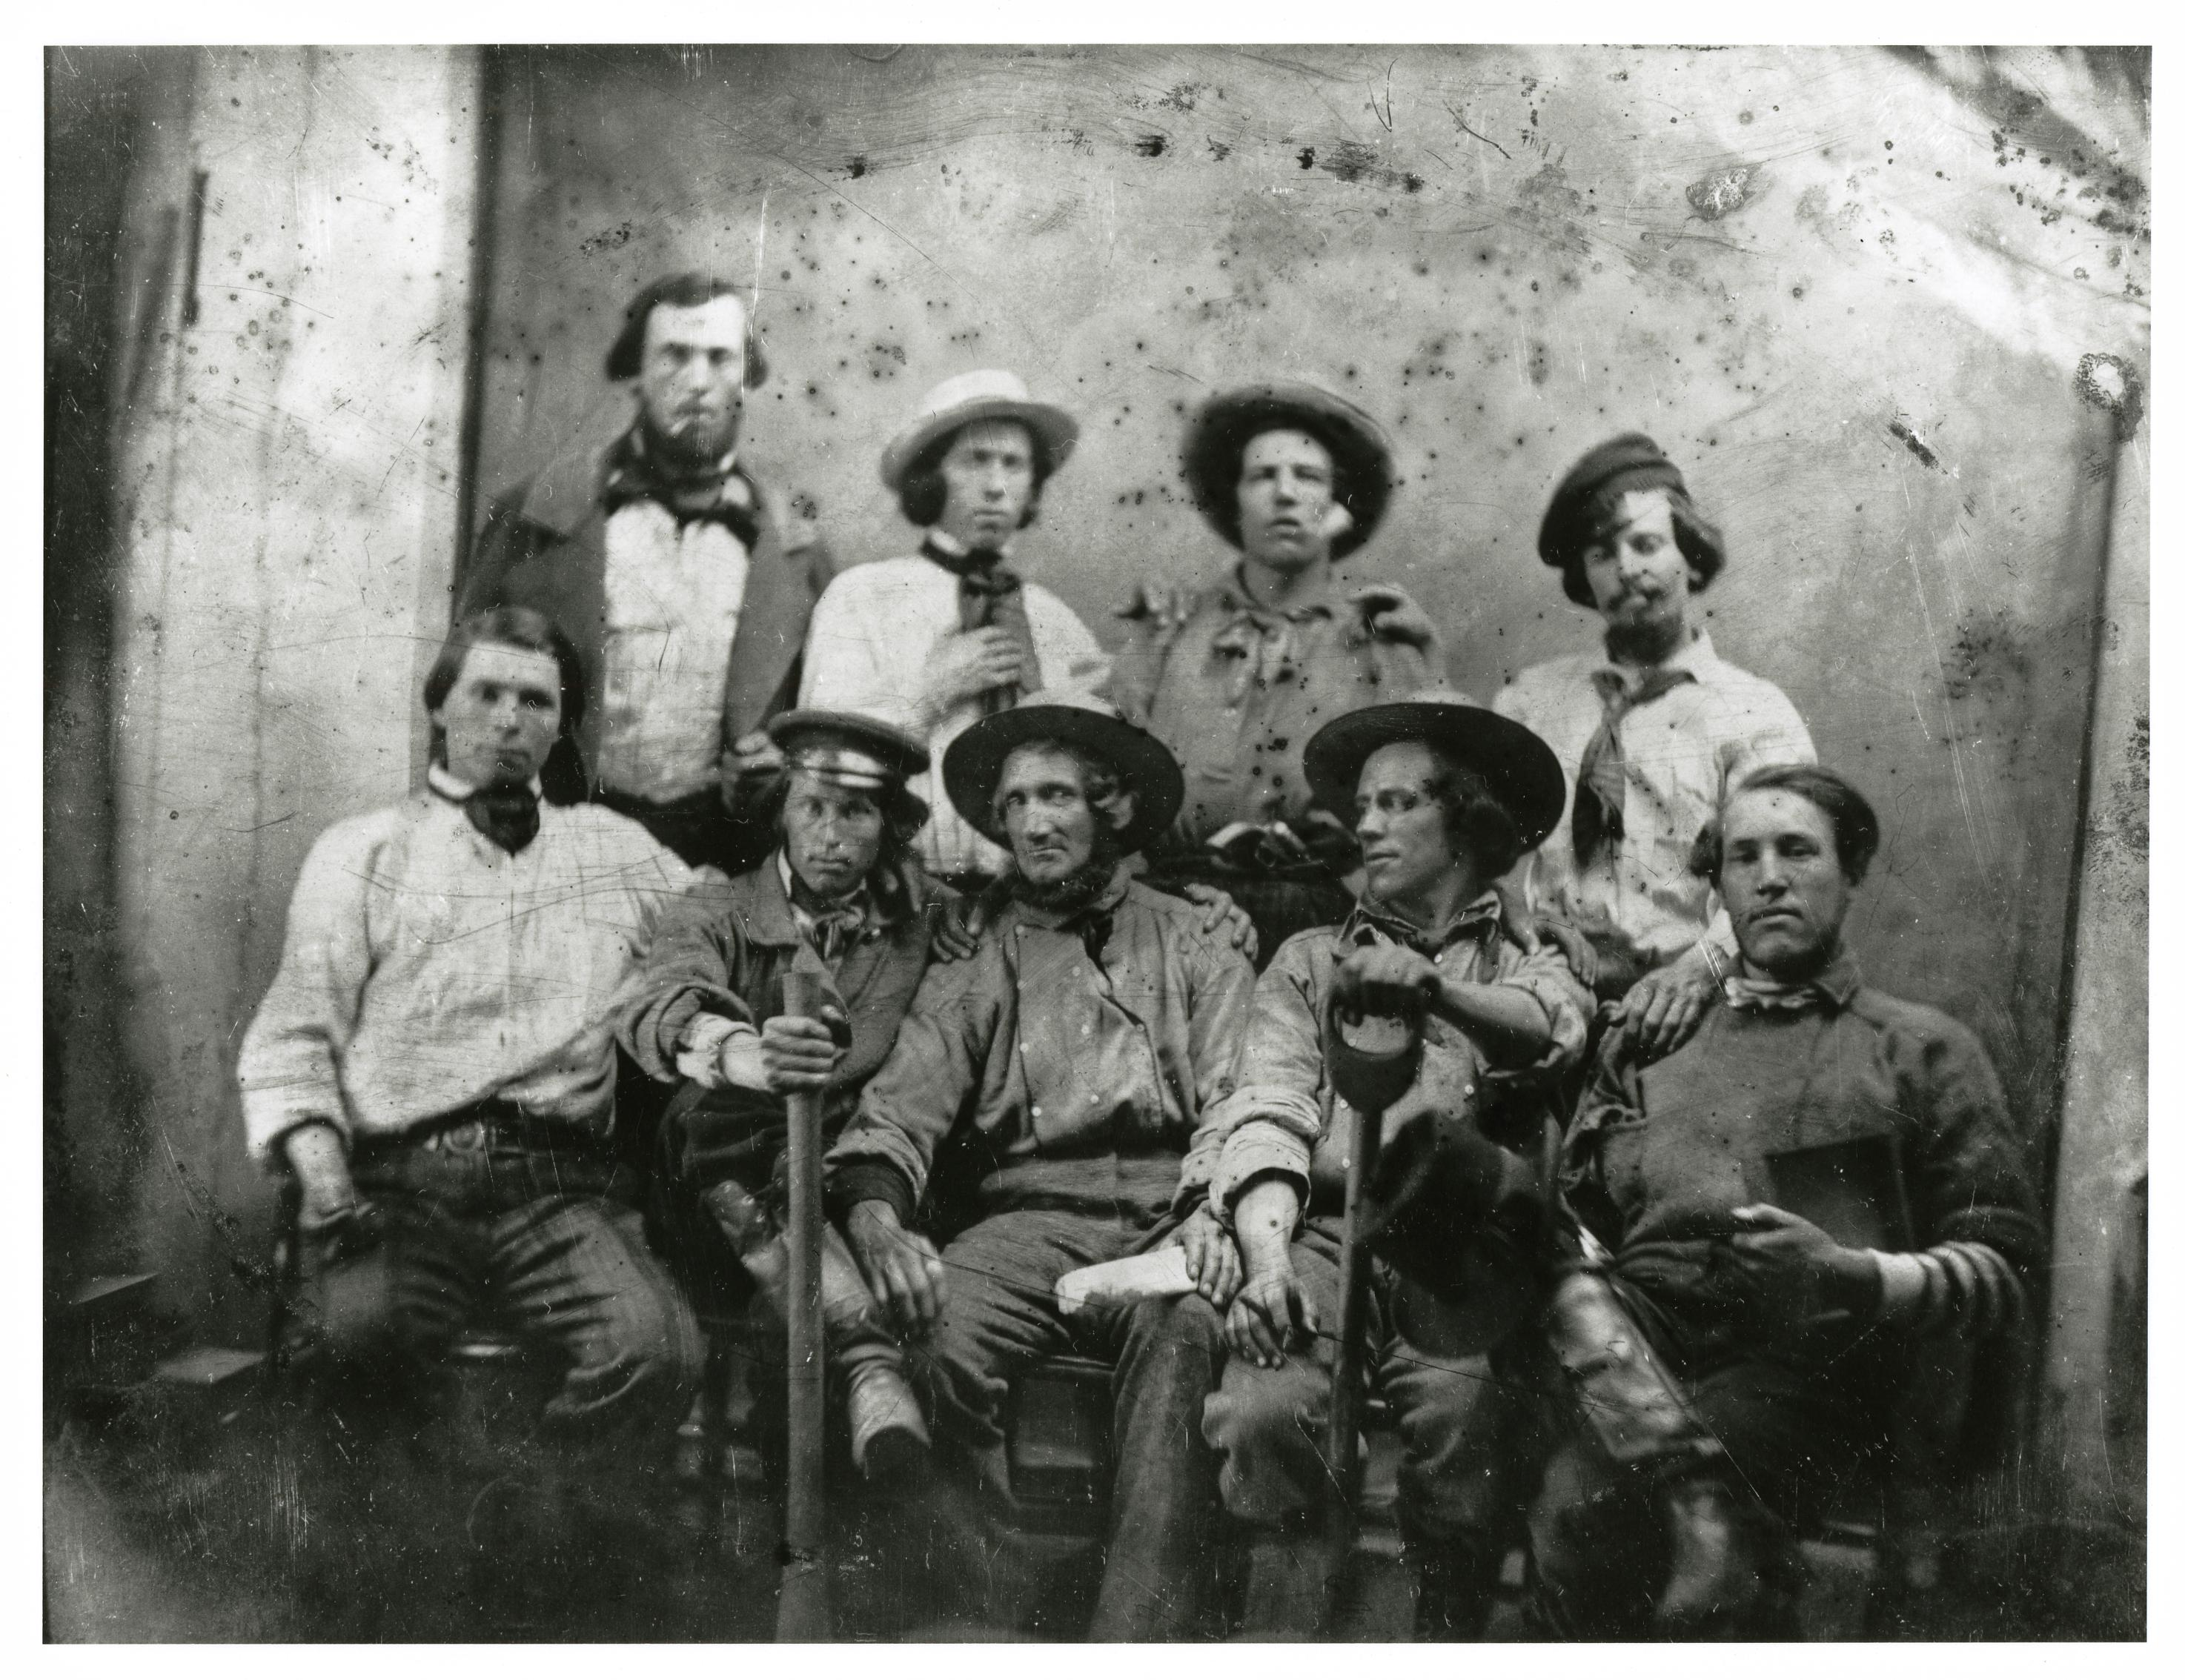 Men with shovels and dirty clothing pose for a photo.